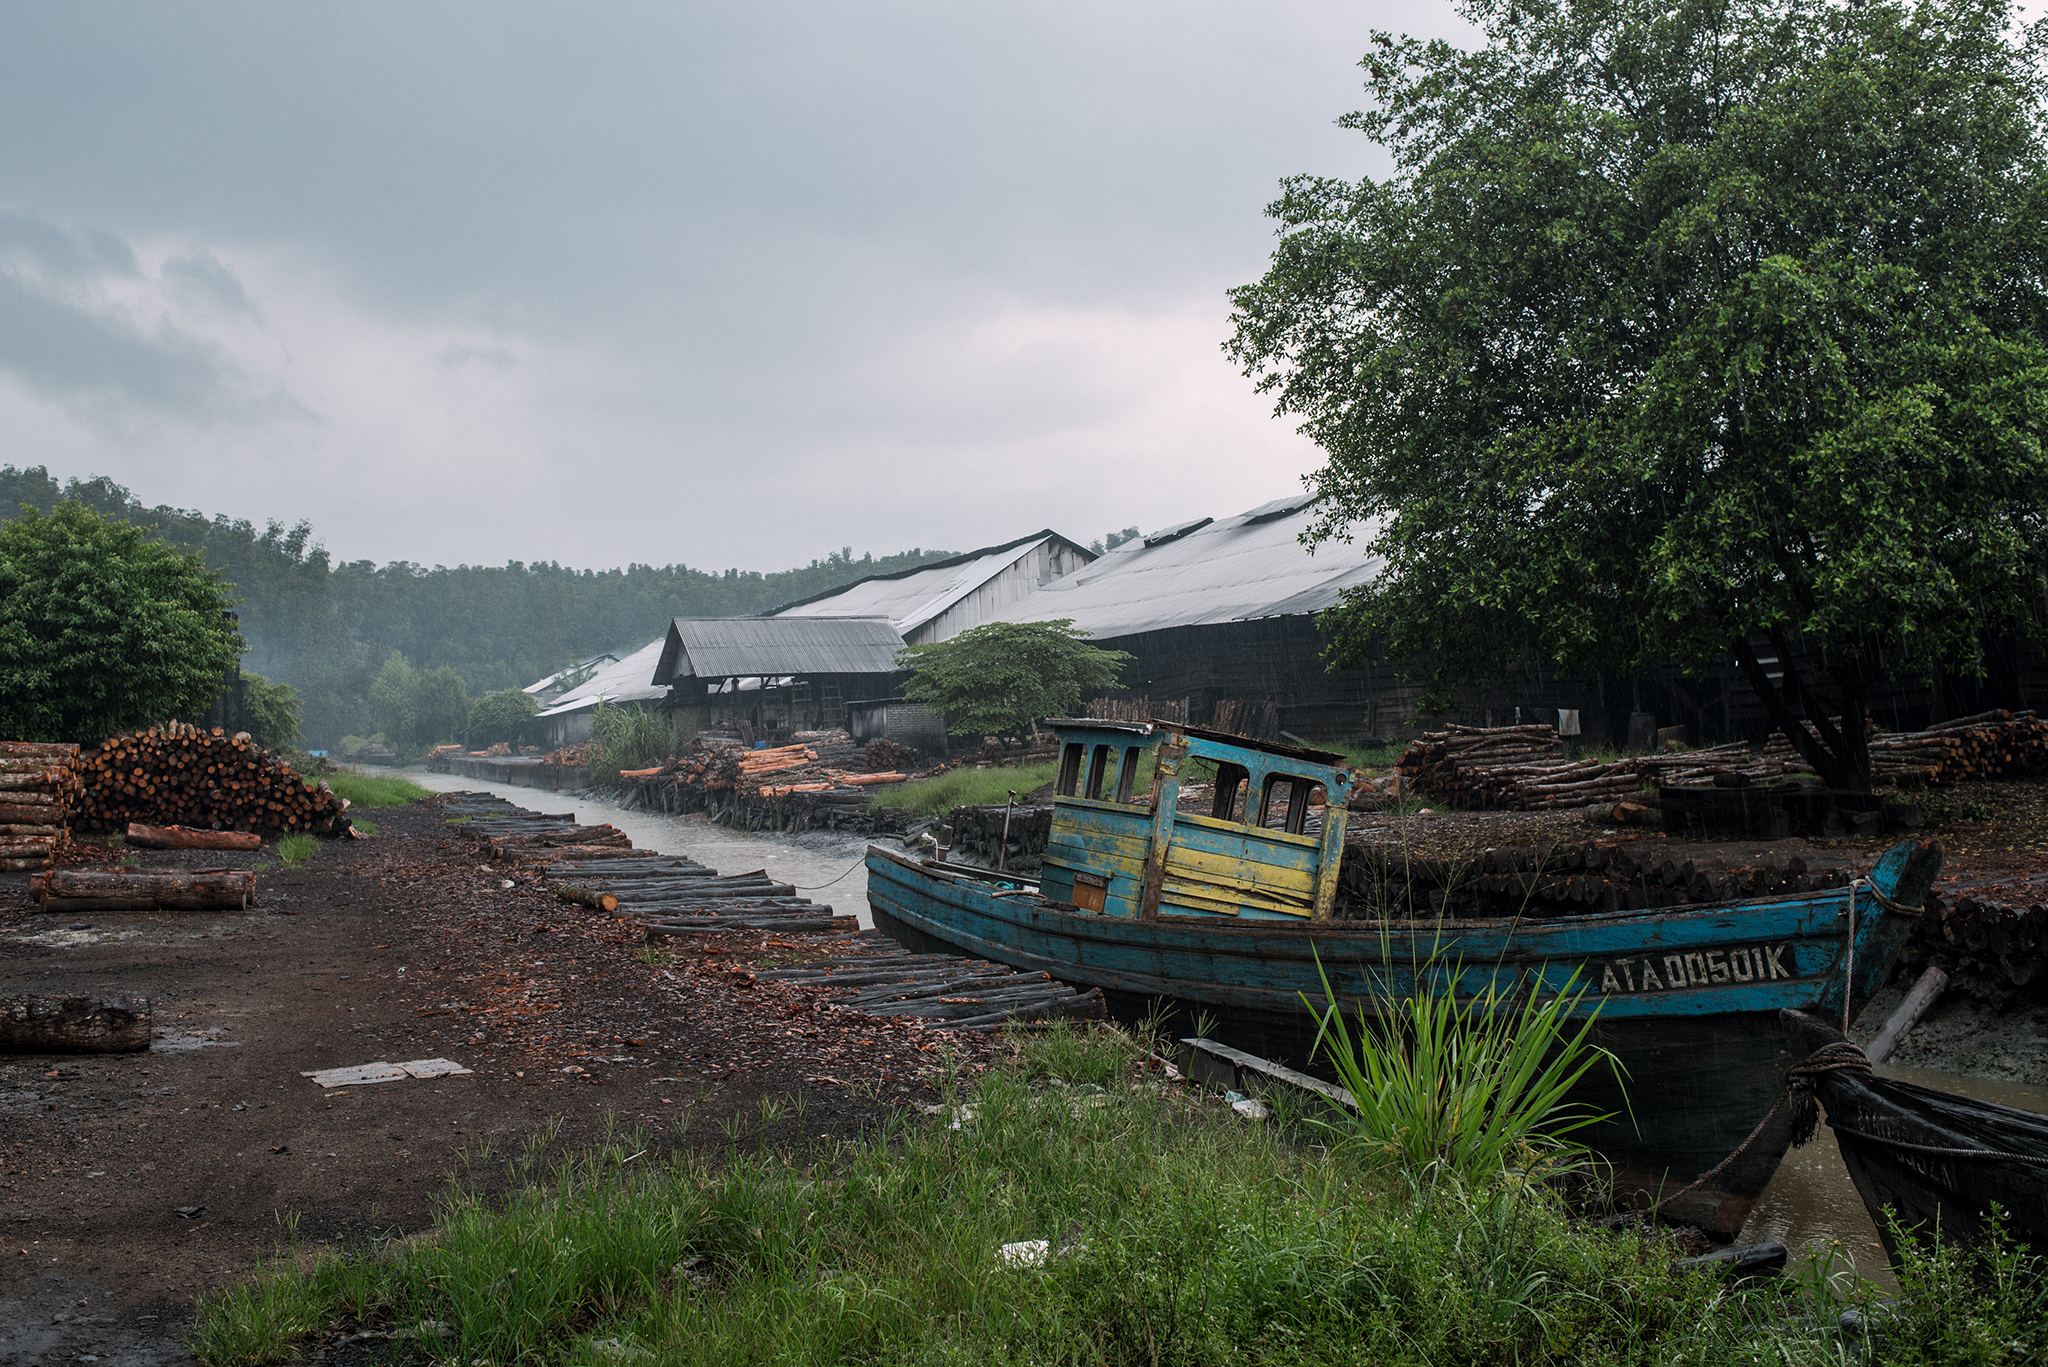 These boats would transport the logged mangrove trees from the forest to the dock for unloading.